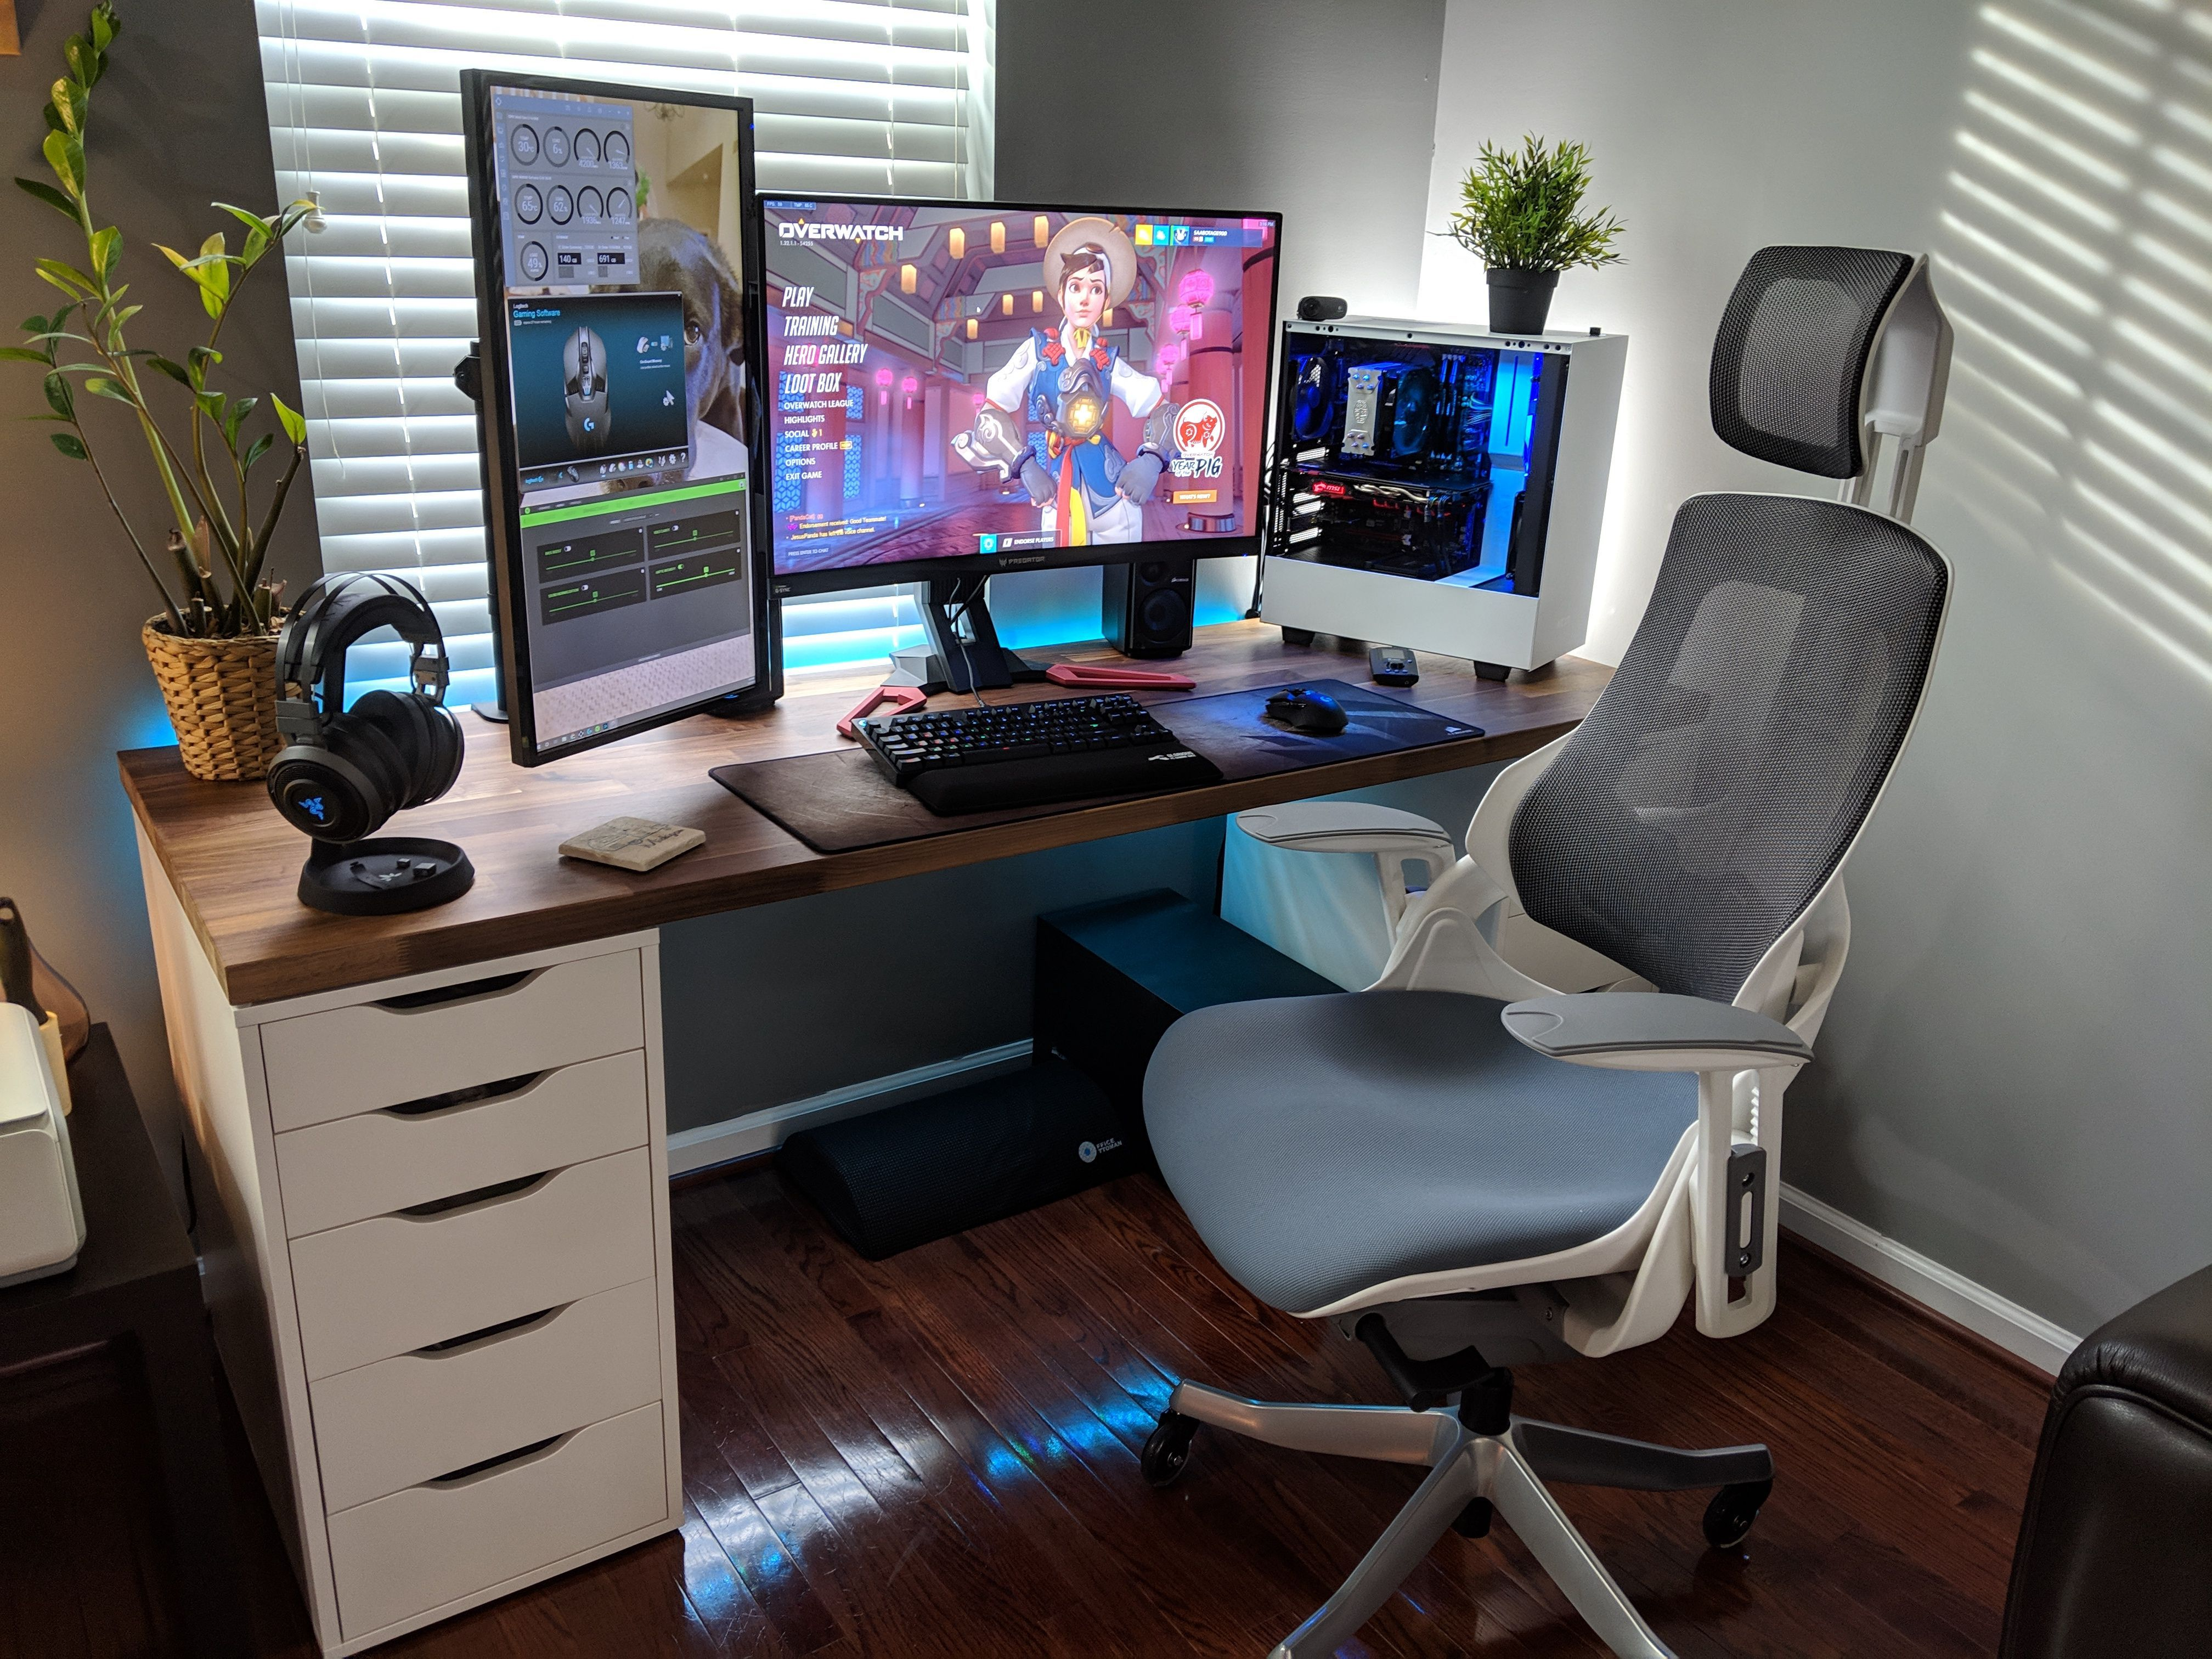 Awesome Setup With An Uplift Pursuit Ergo Chair By Saabotage900